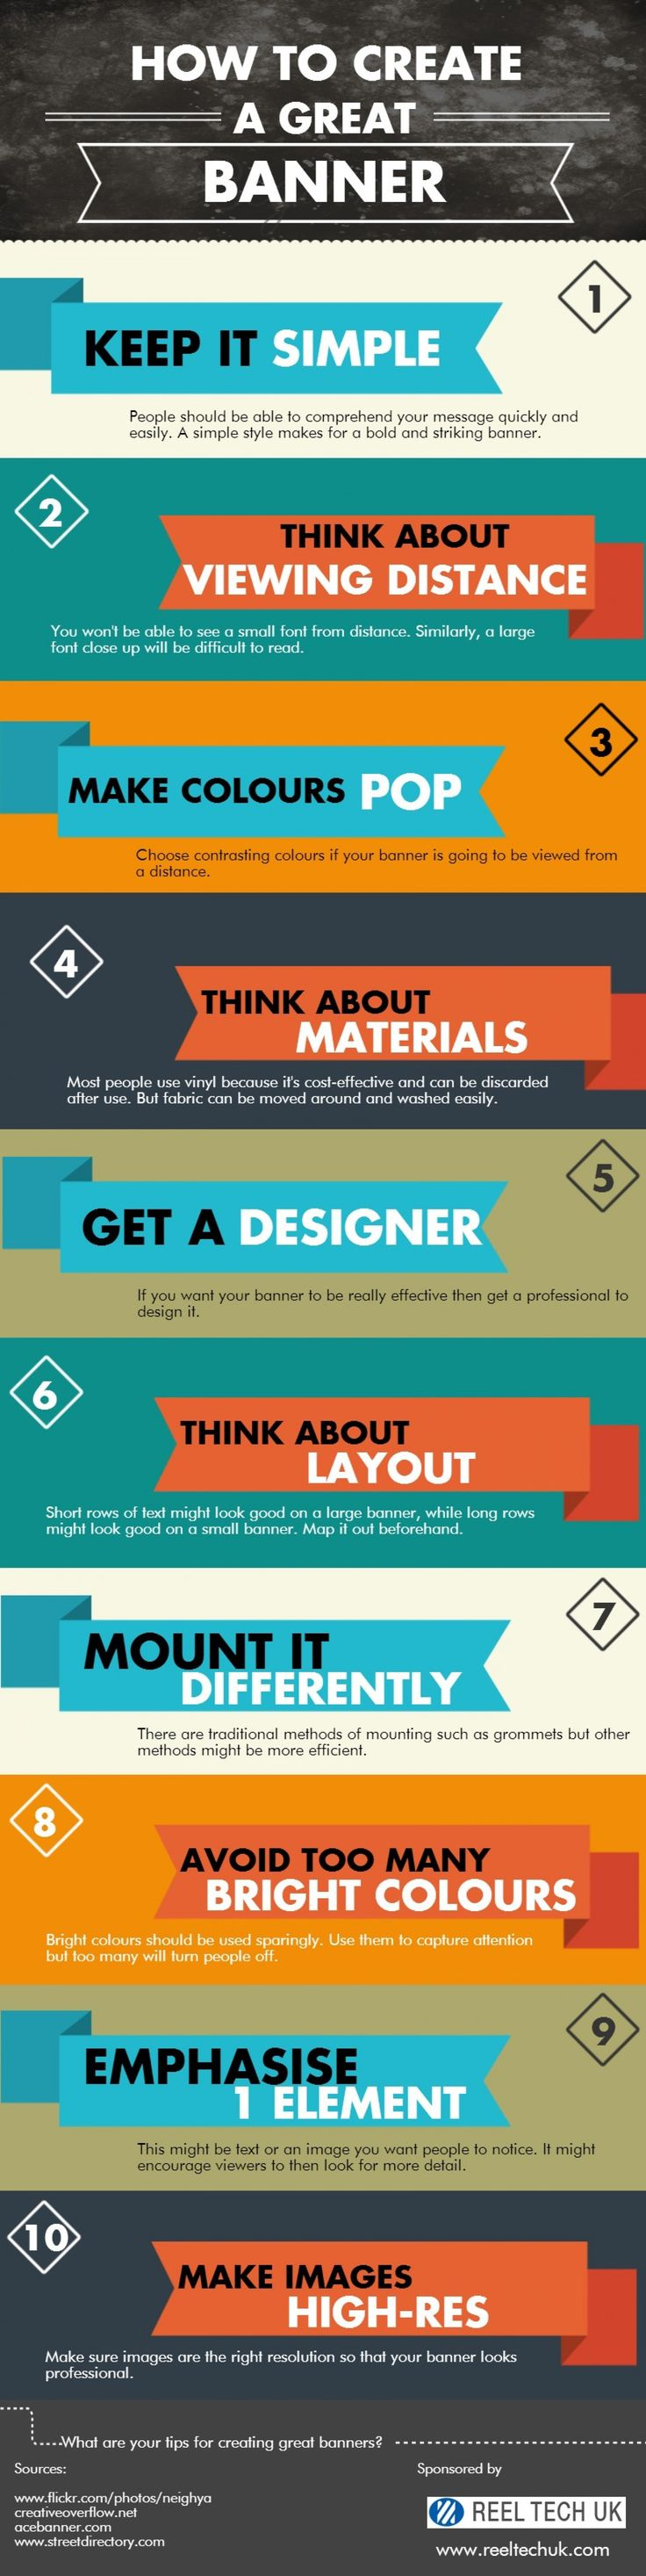 how to create a web banner